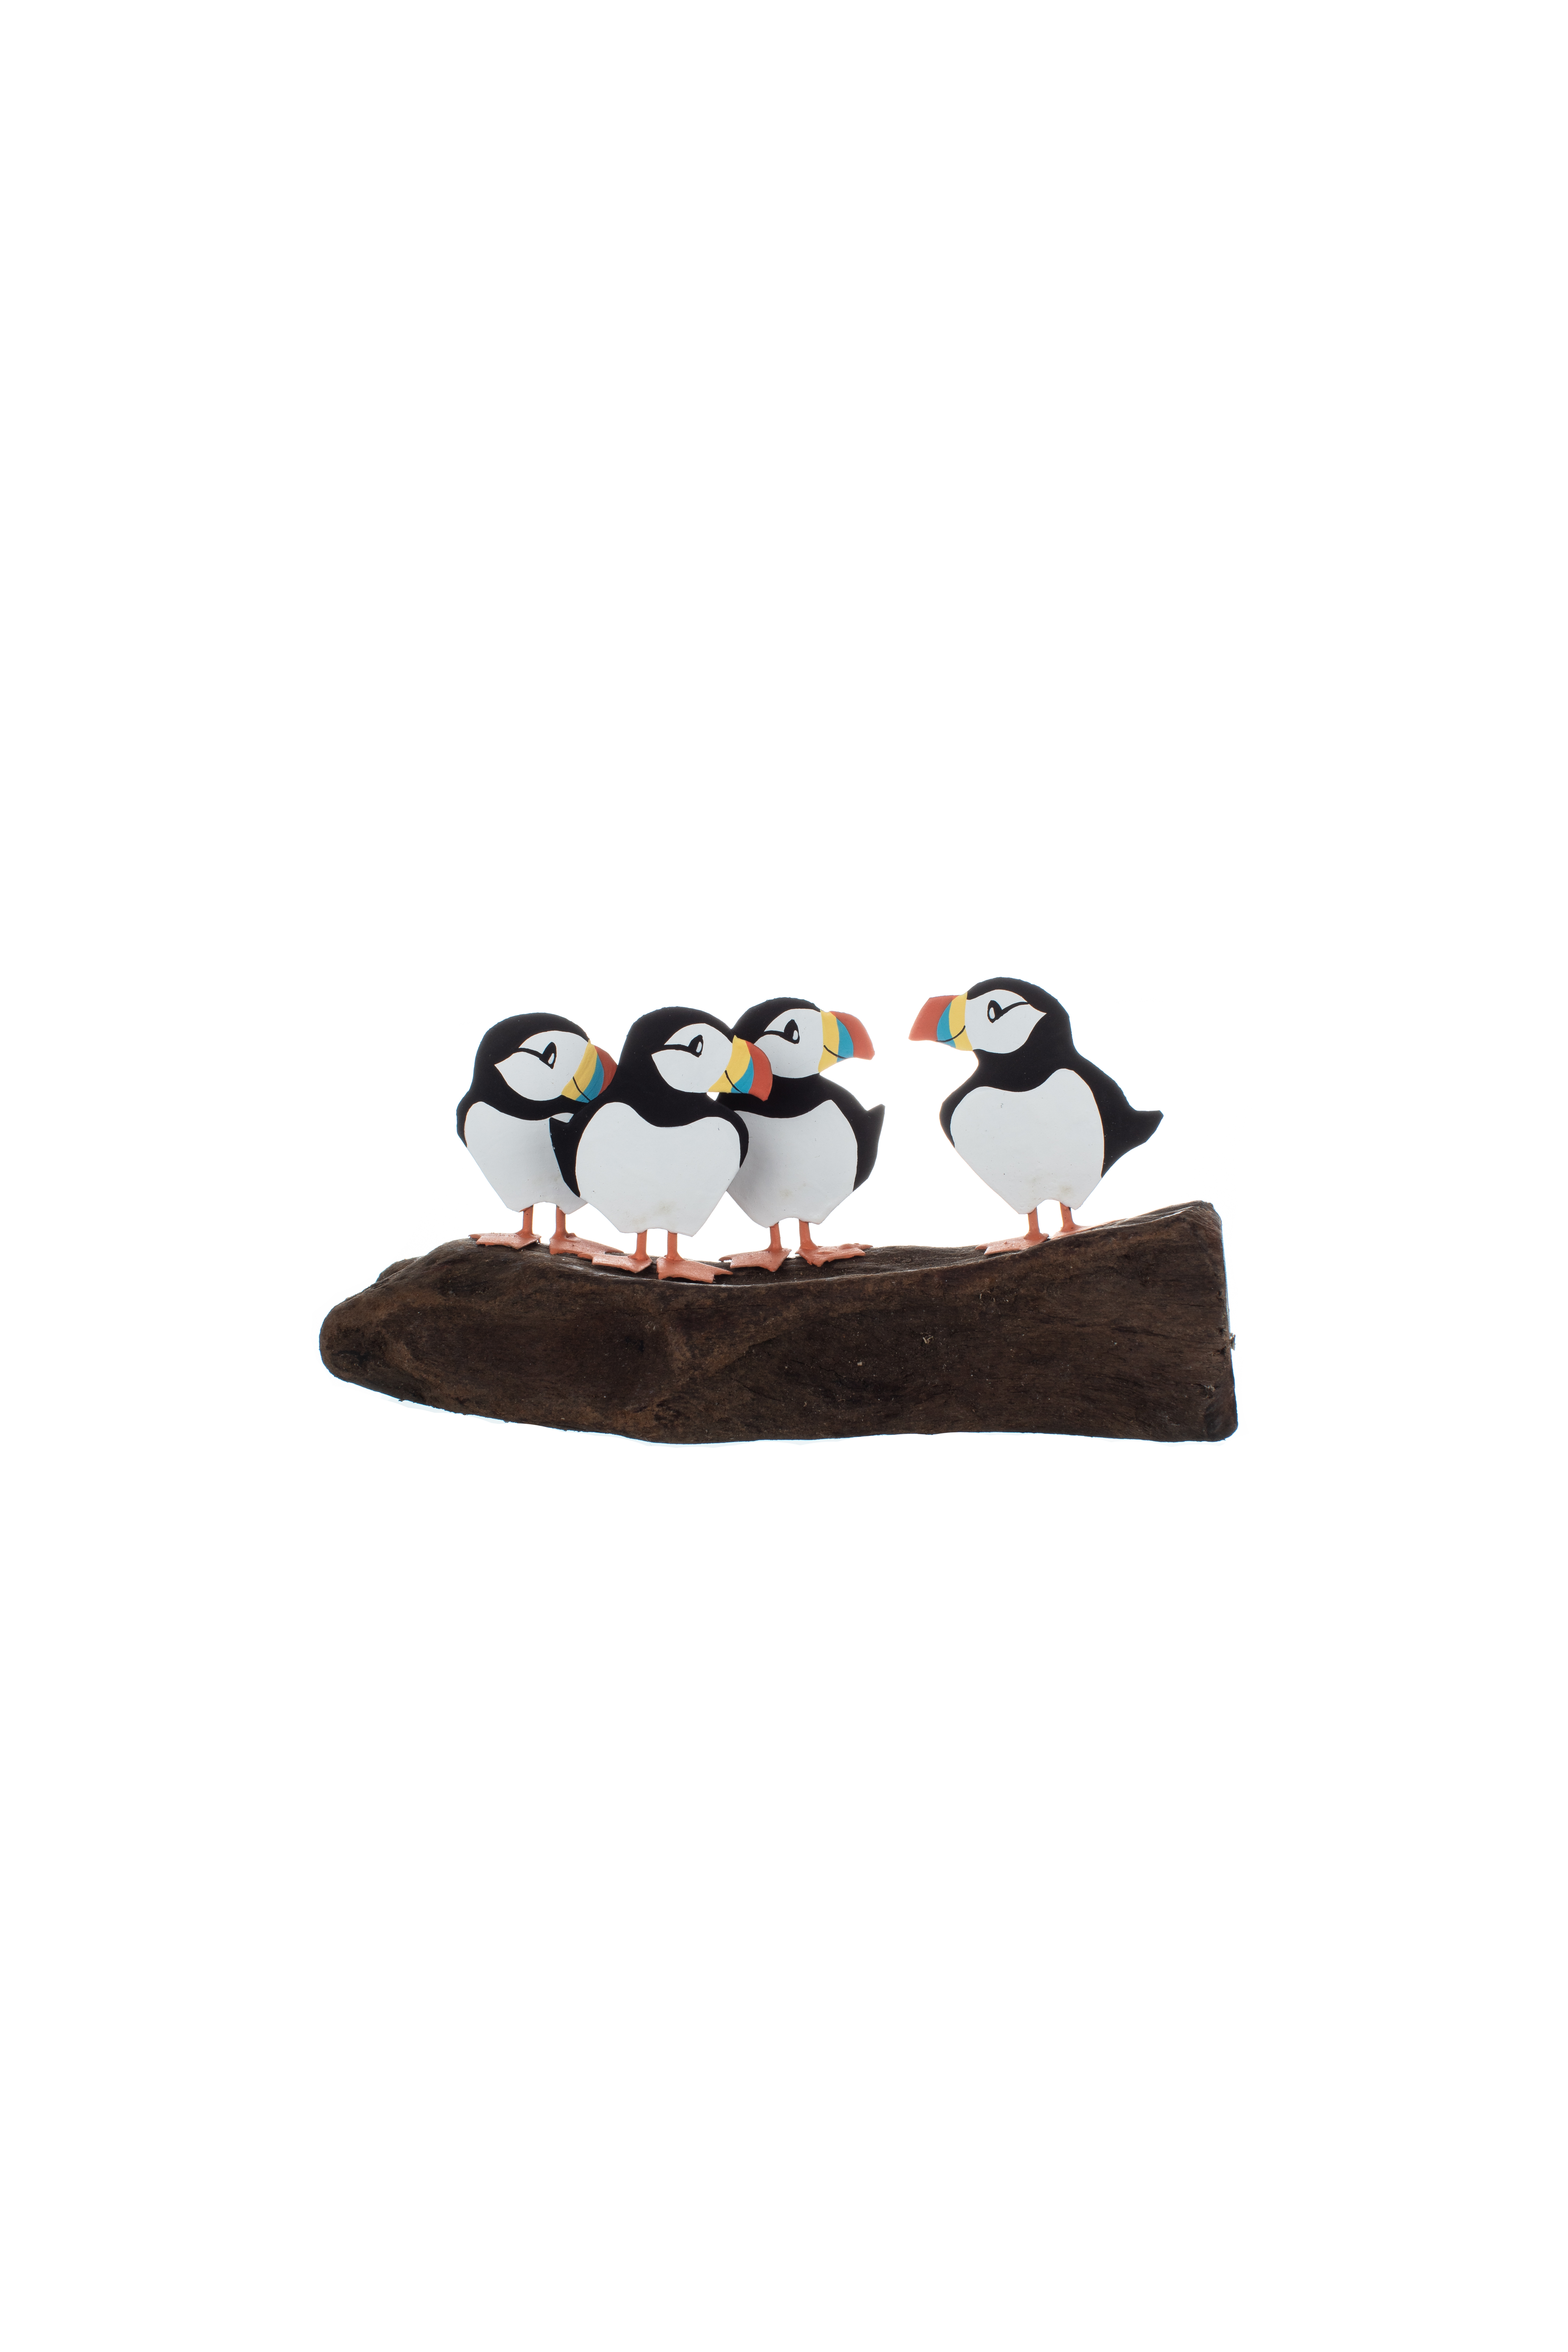 Circus of 4 Puffins on Driftwood